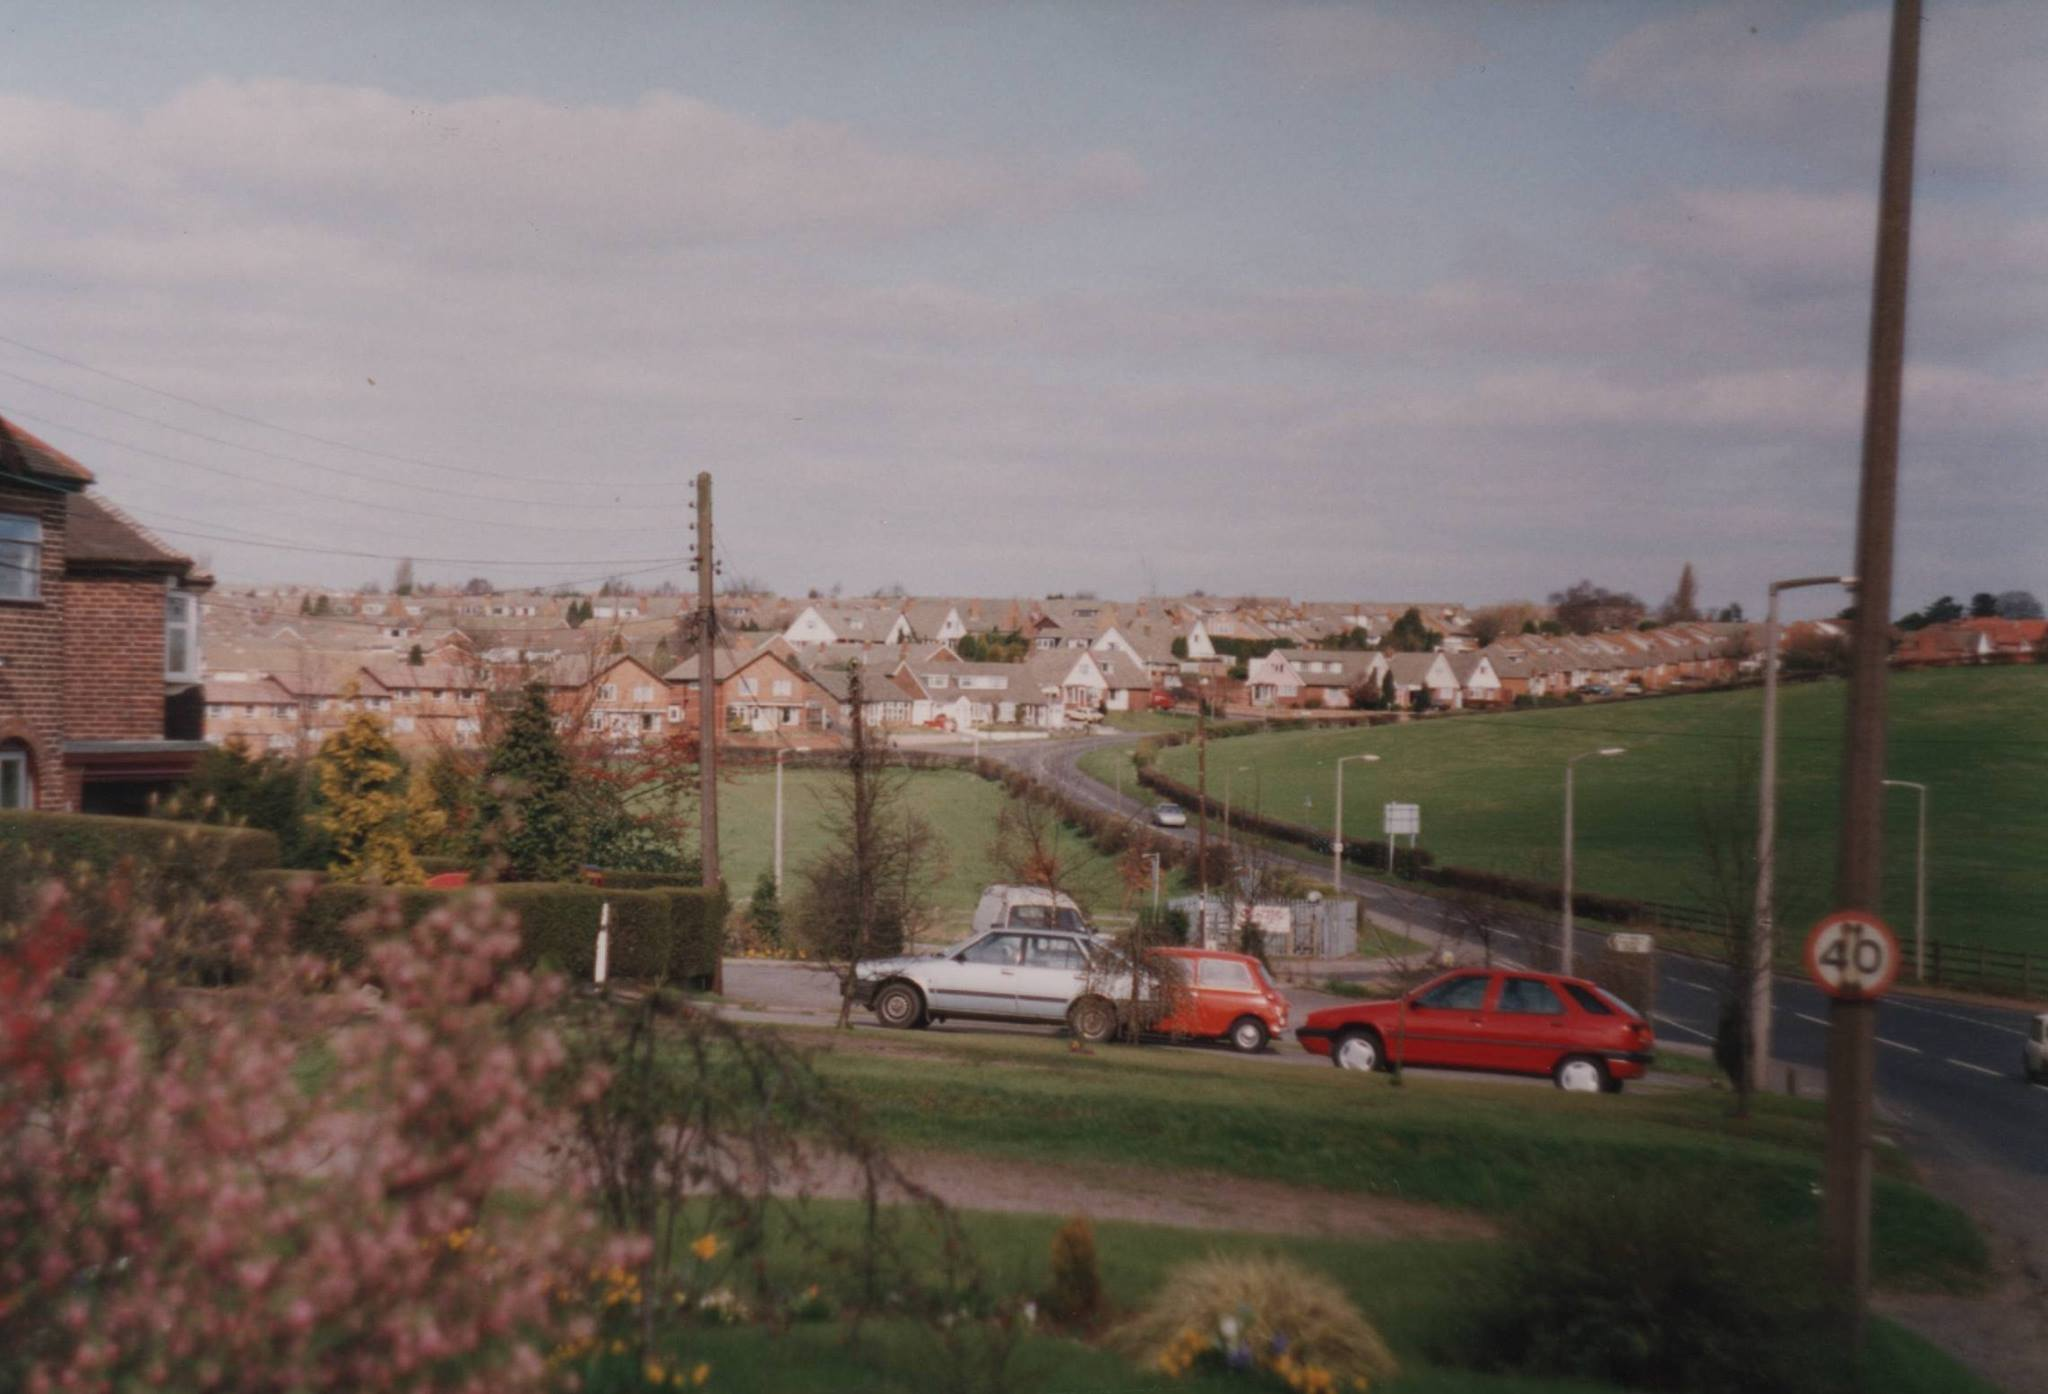 Ogley Hay Road, before the roundabout 1993